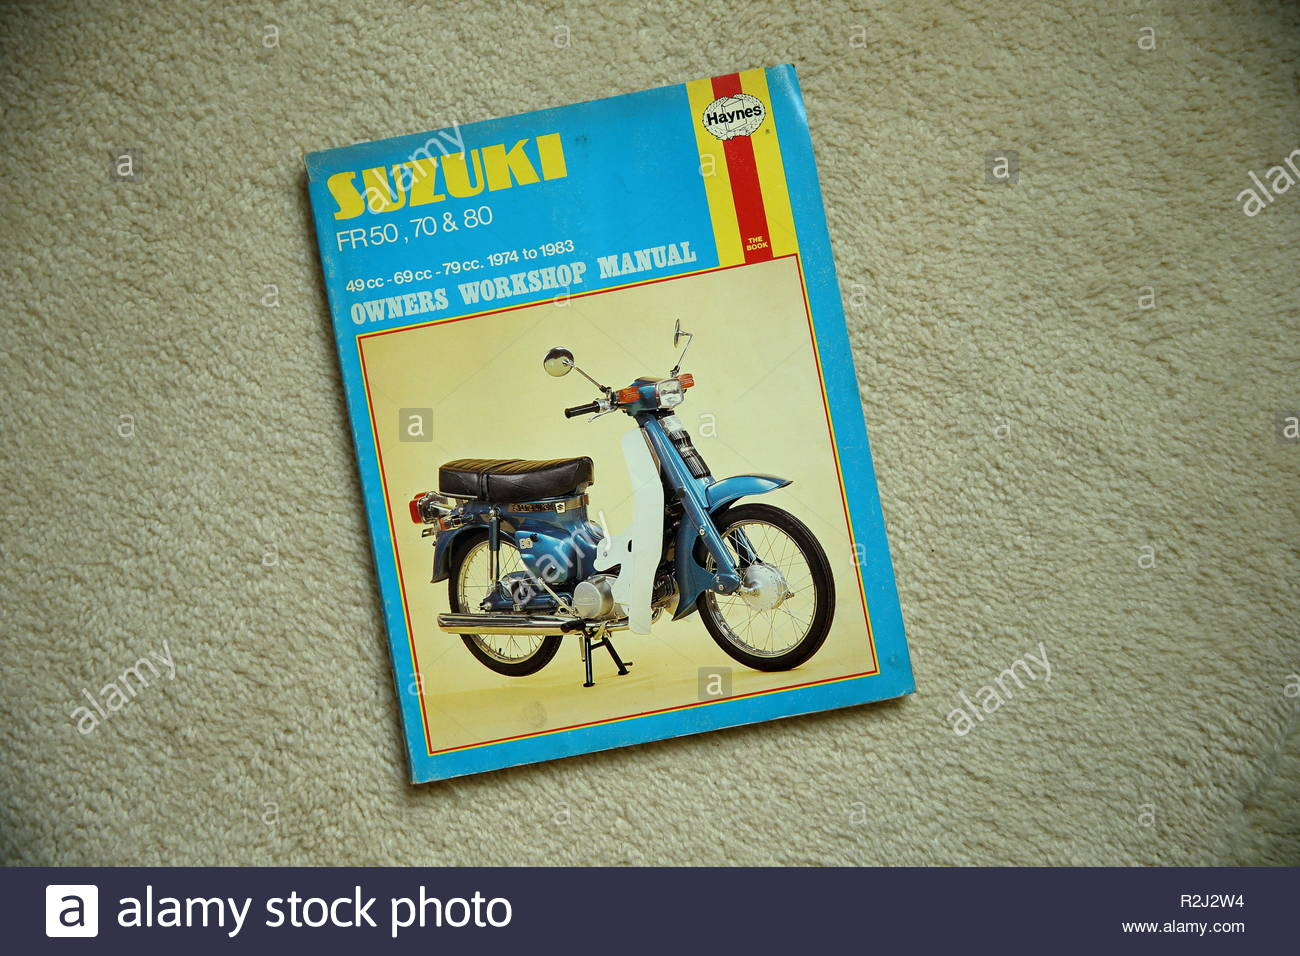 Haynes Owners Workshop Manual for Suzuki FR 50, 70 and 80 Motorcycle, Manual no 801, ISBN 0856968013 - Stock Image